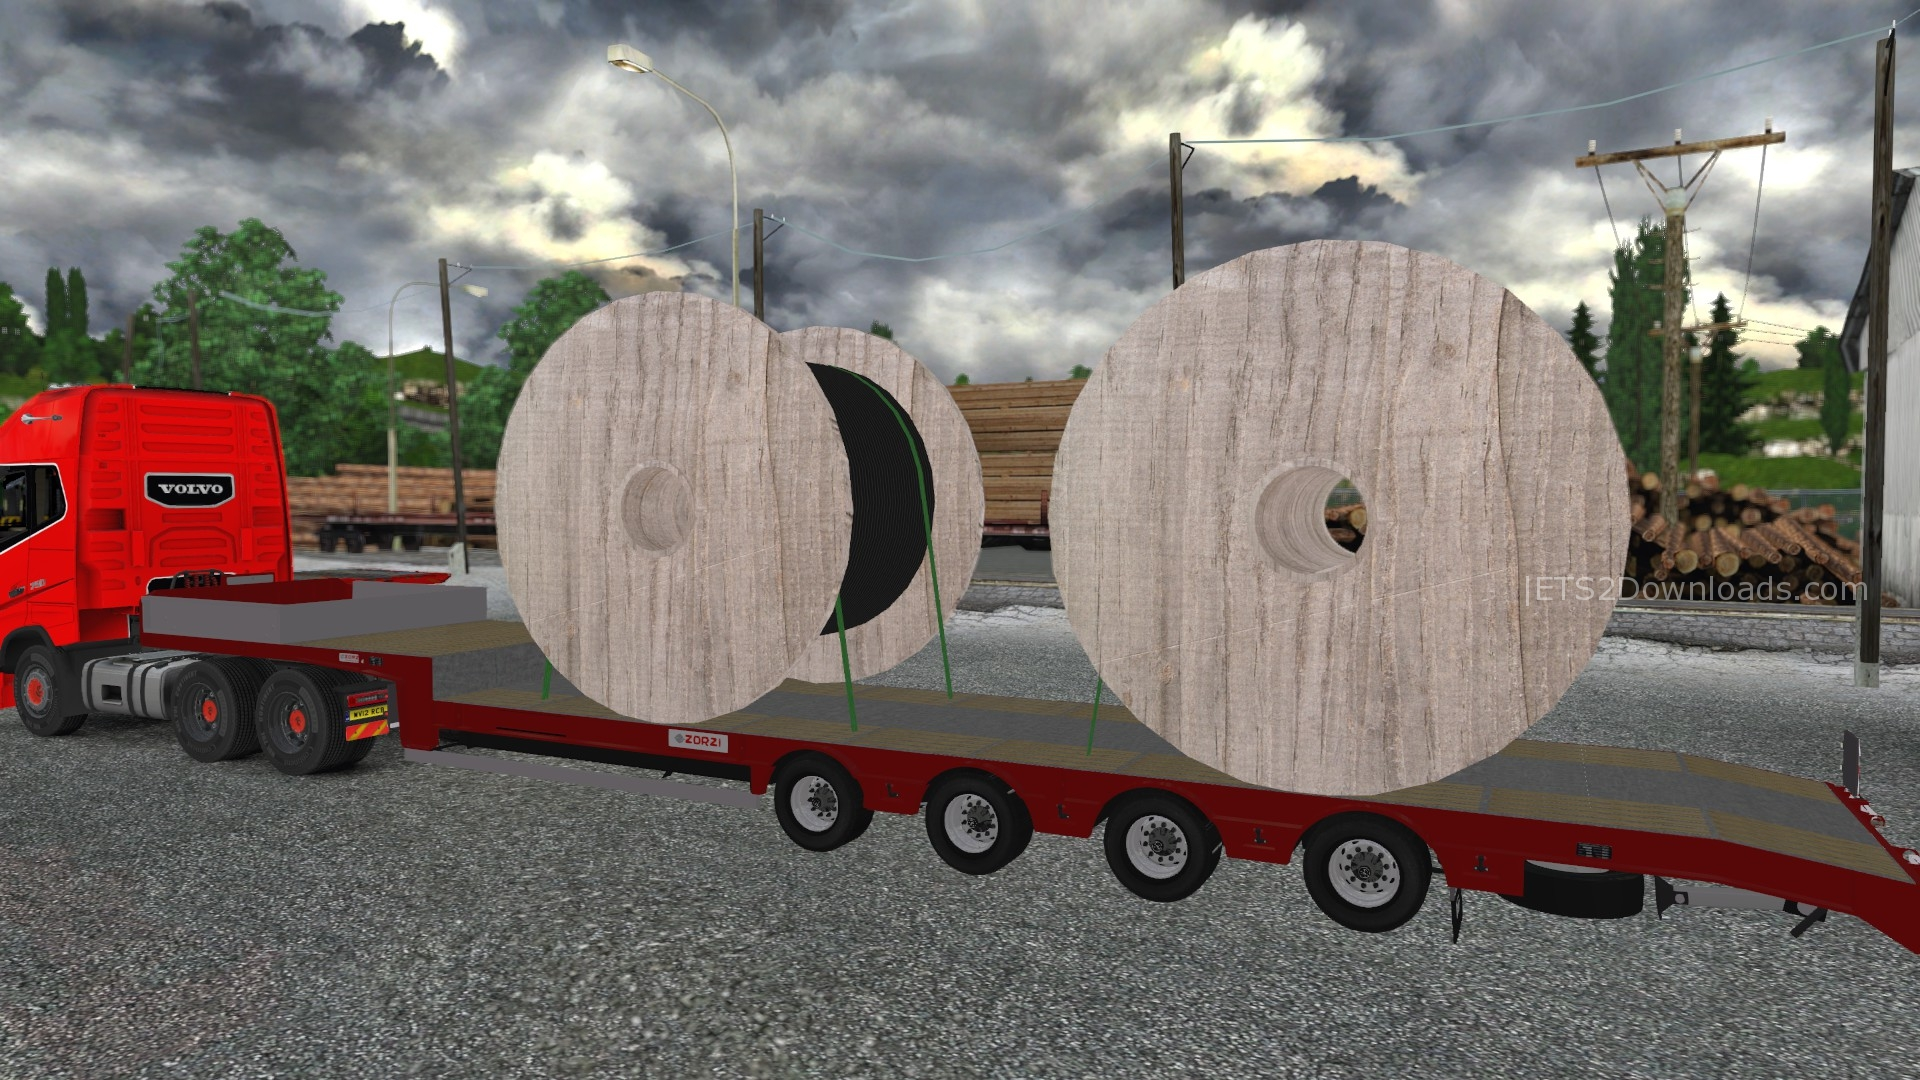 big-cable-rolls-trailer-2